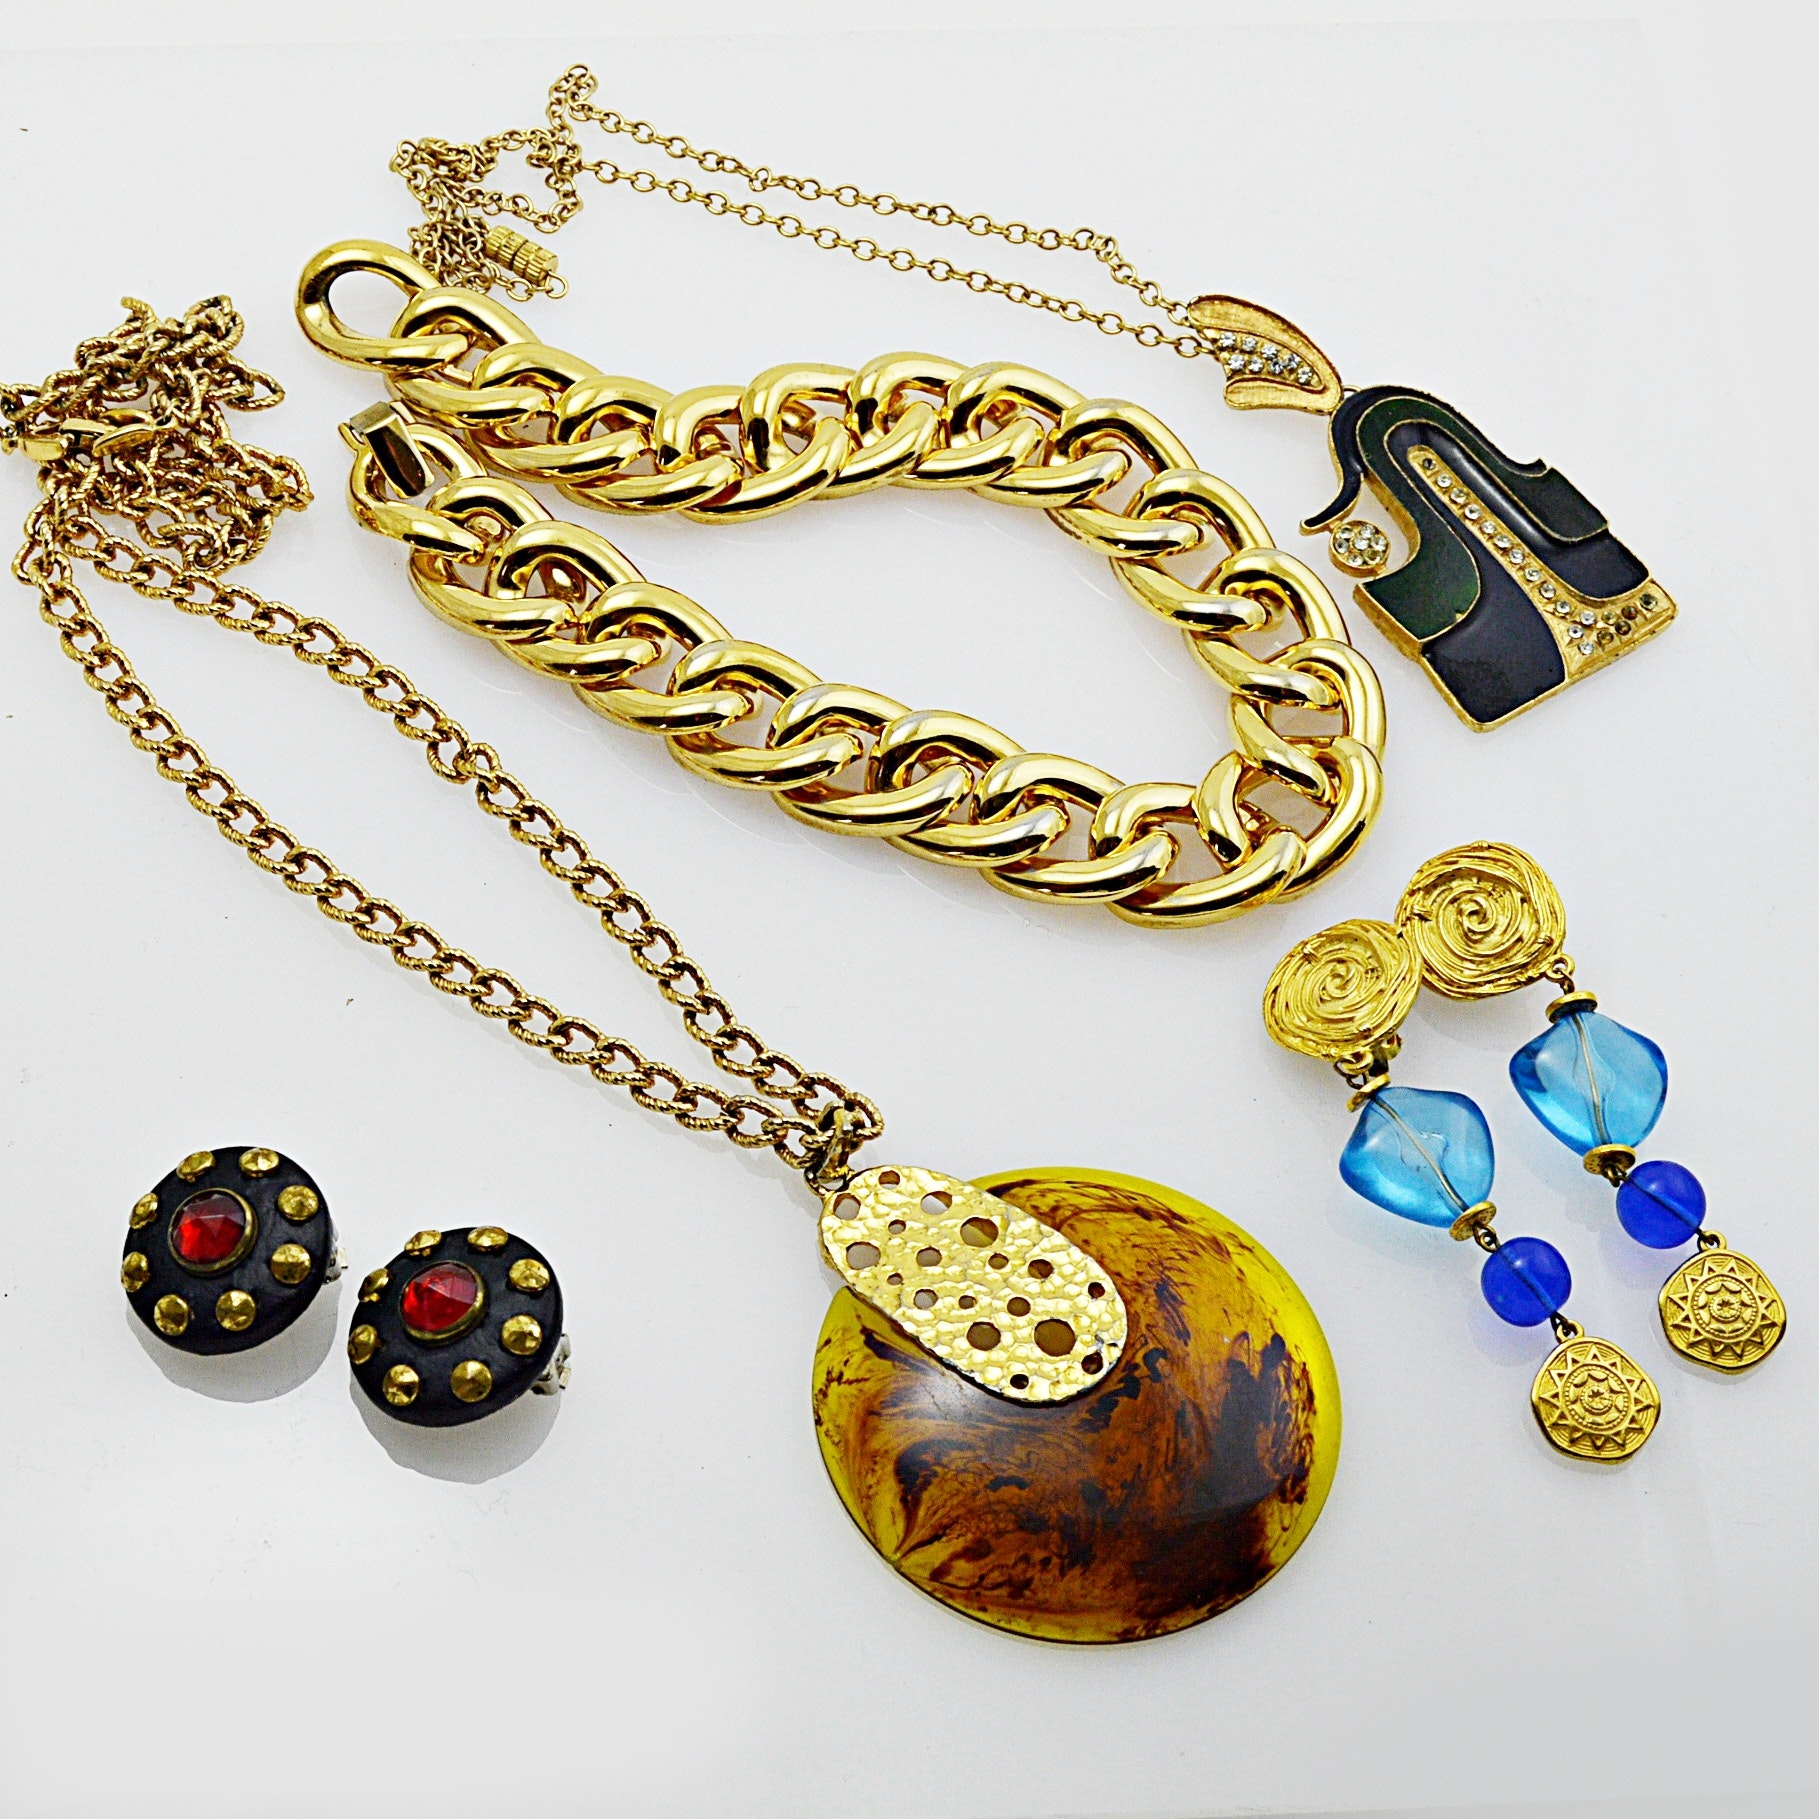 1980s Gold Tone Jewelry Selection